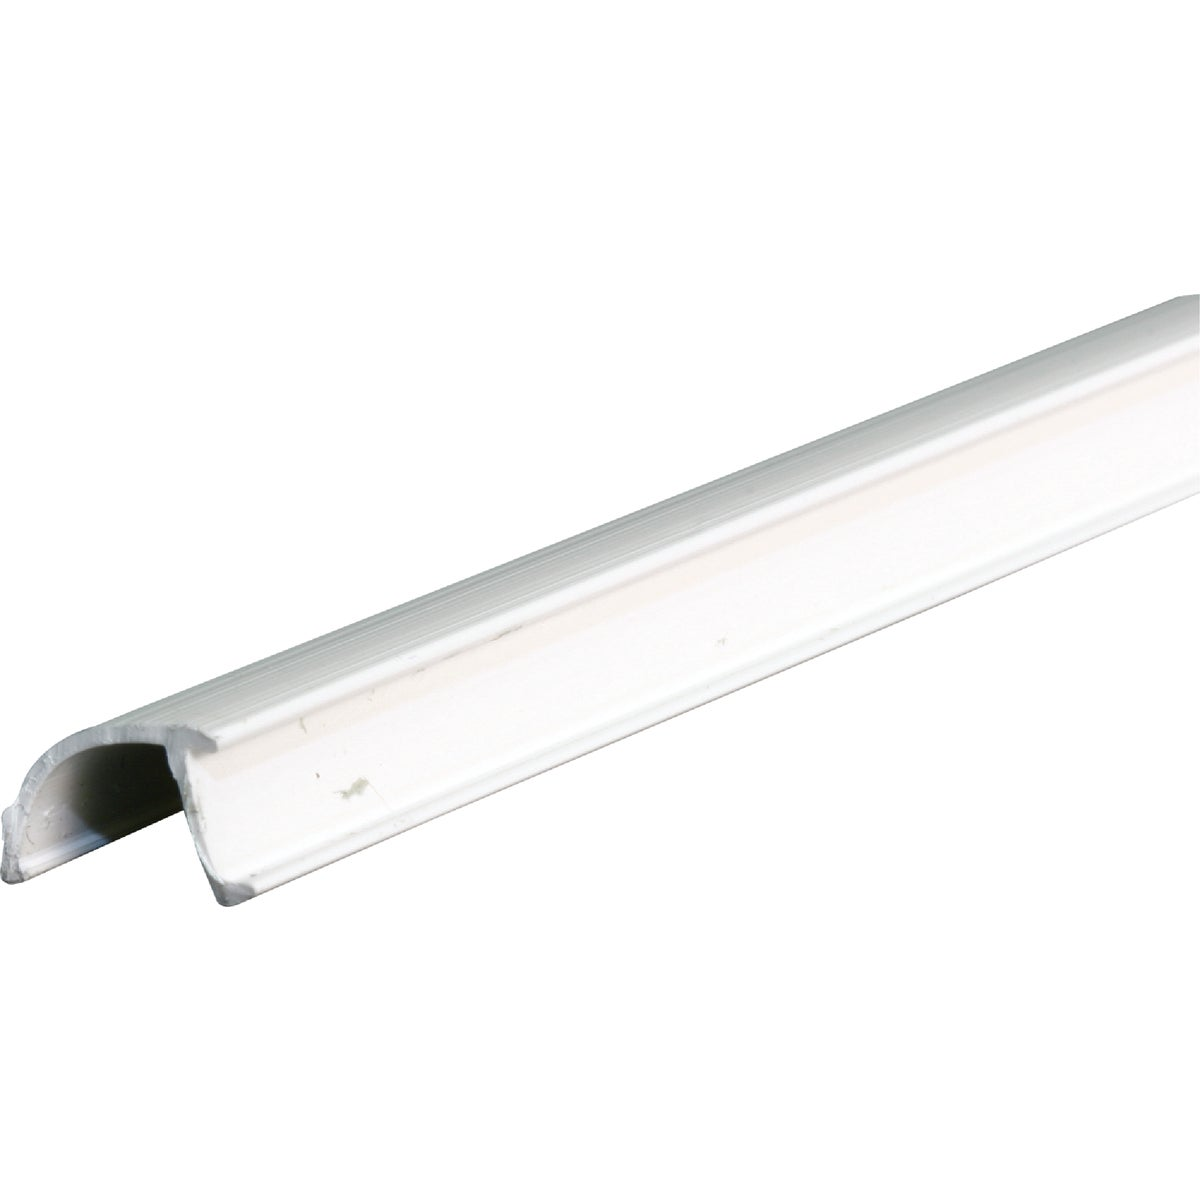 "72"" WHT RIGID SPLINE - P7861 by Prime Line Products"